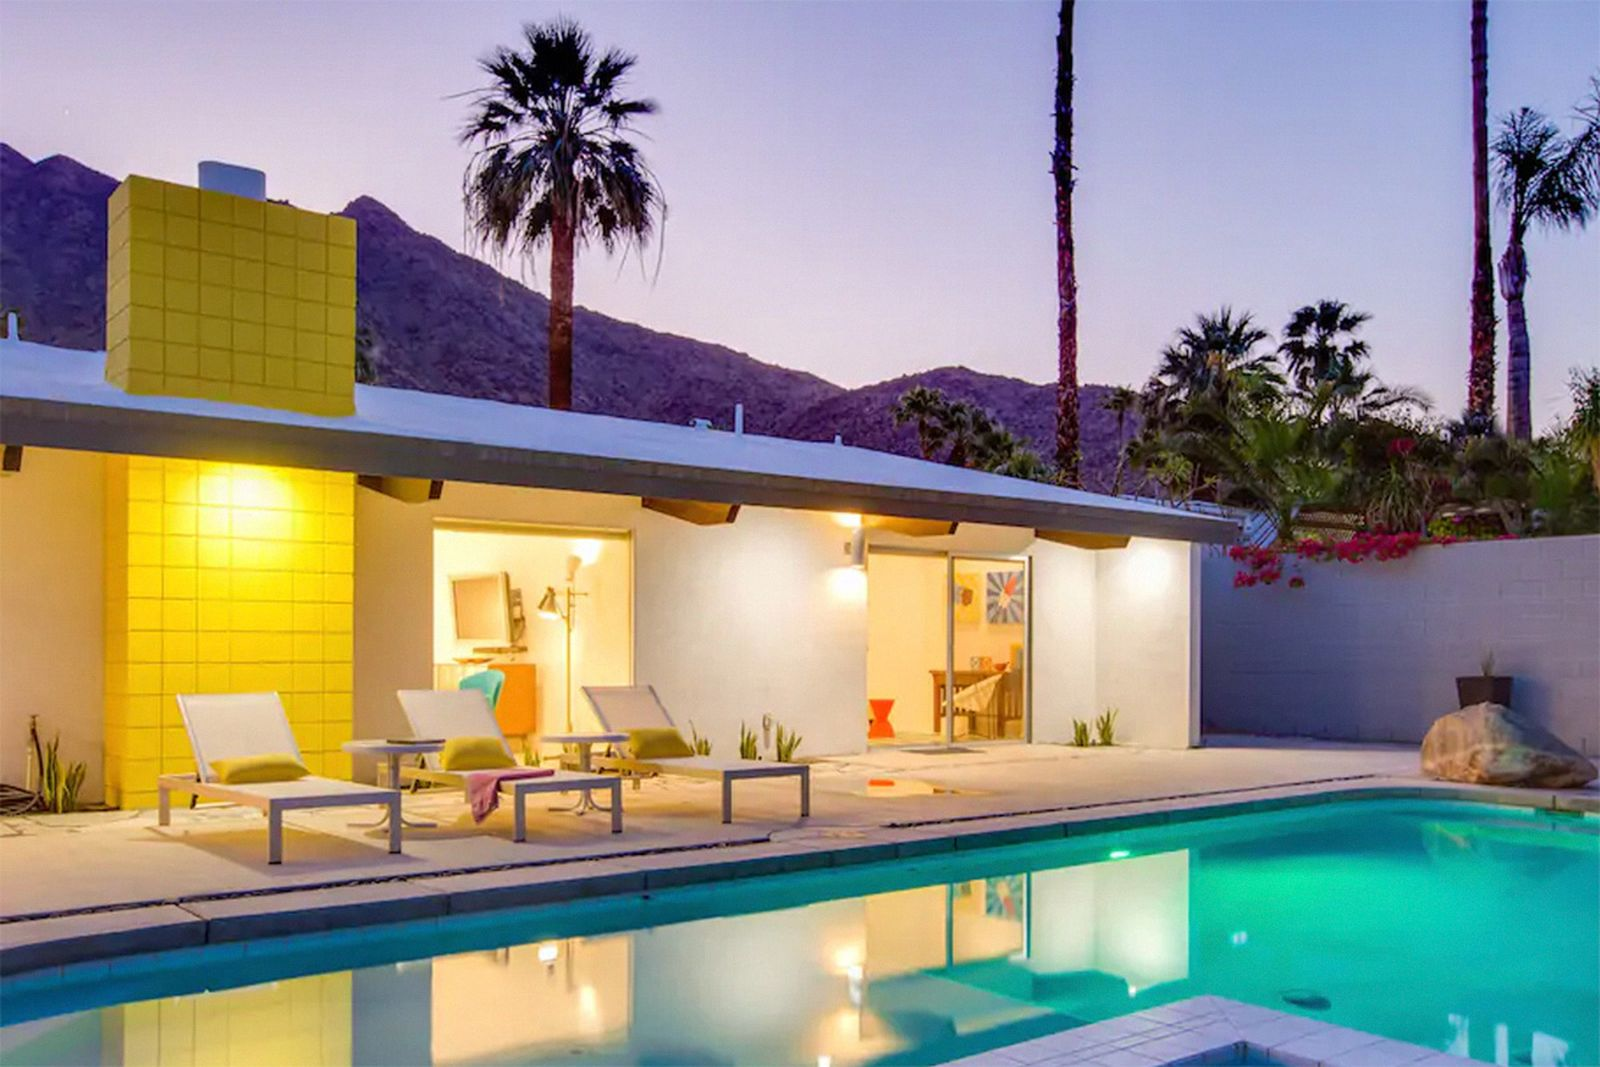 coachella 2019 x best places stay airbnb palm springs